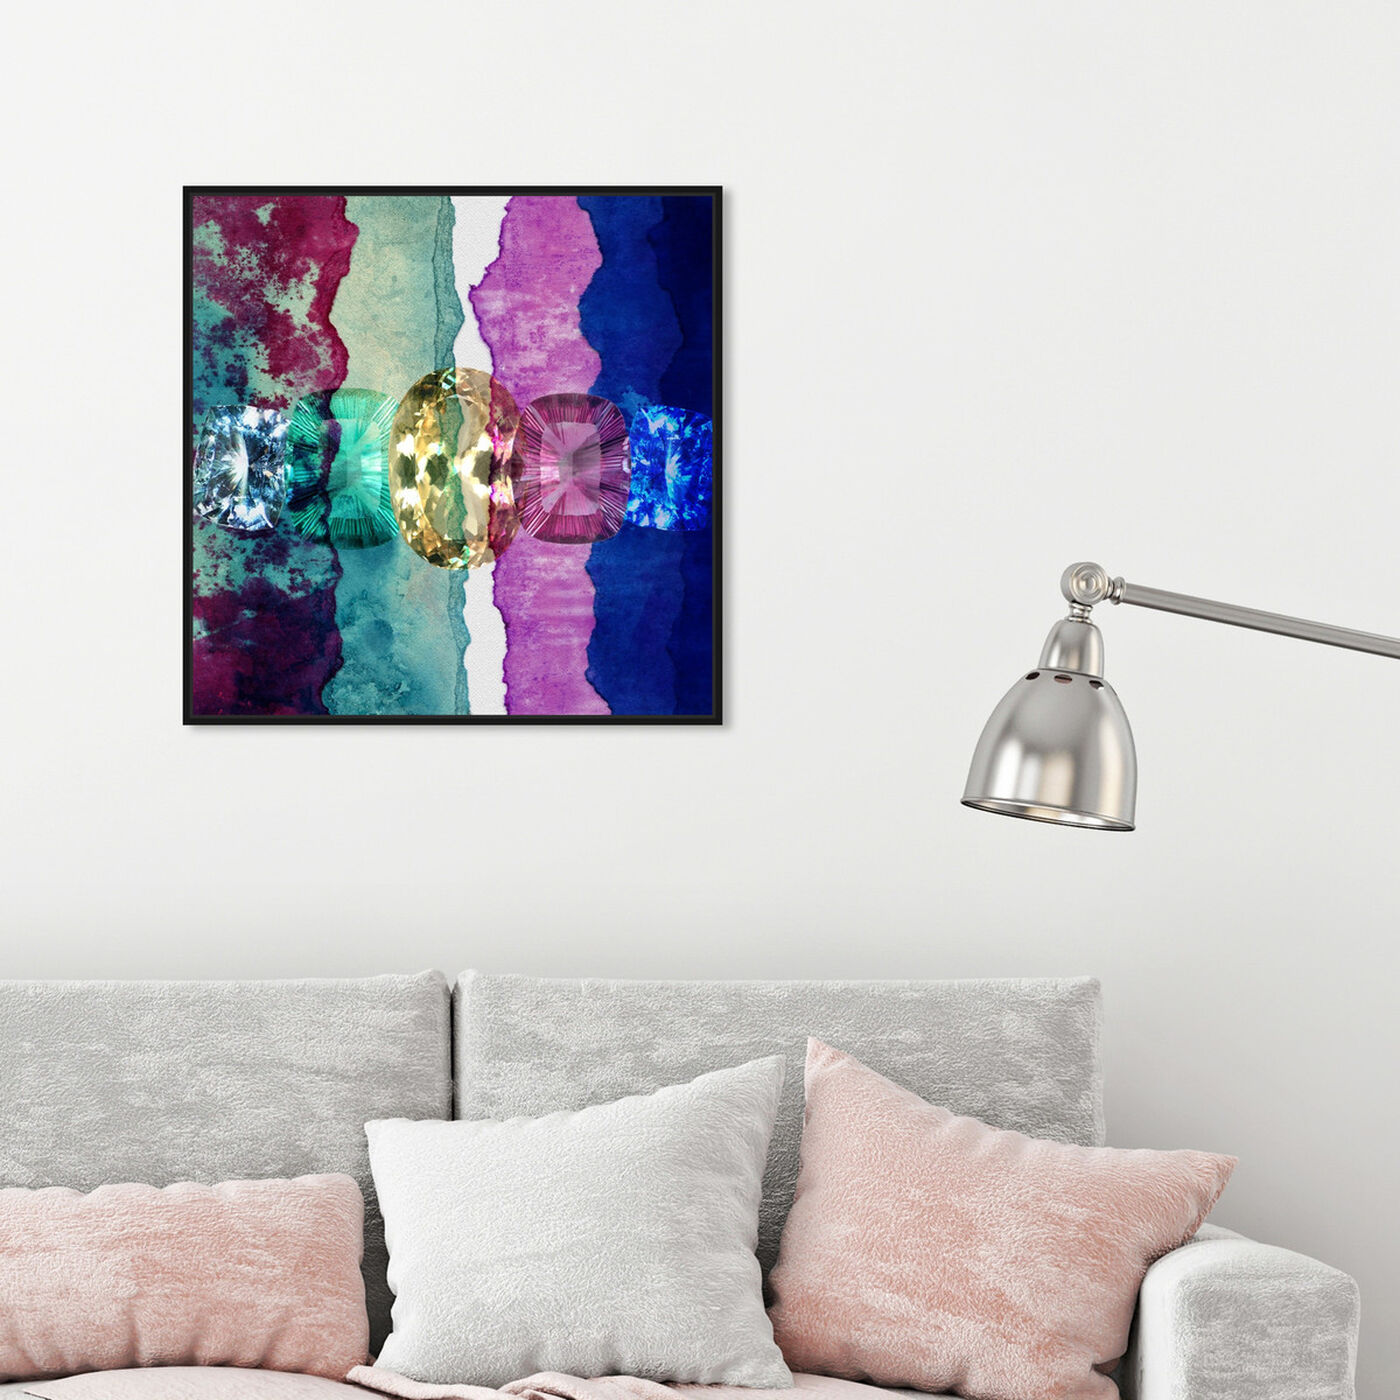 Hanging view of Texture Study I featuring abstract and crystals art.